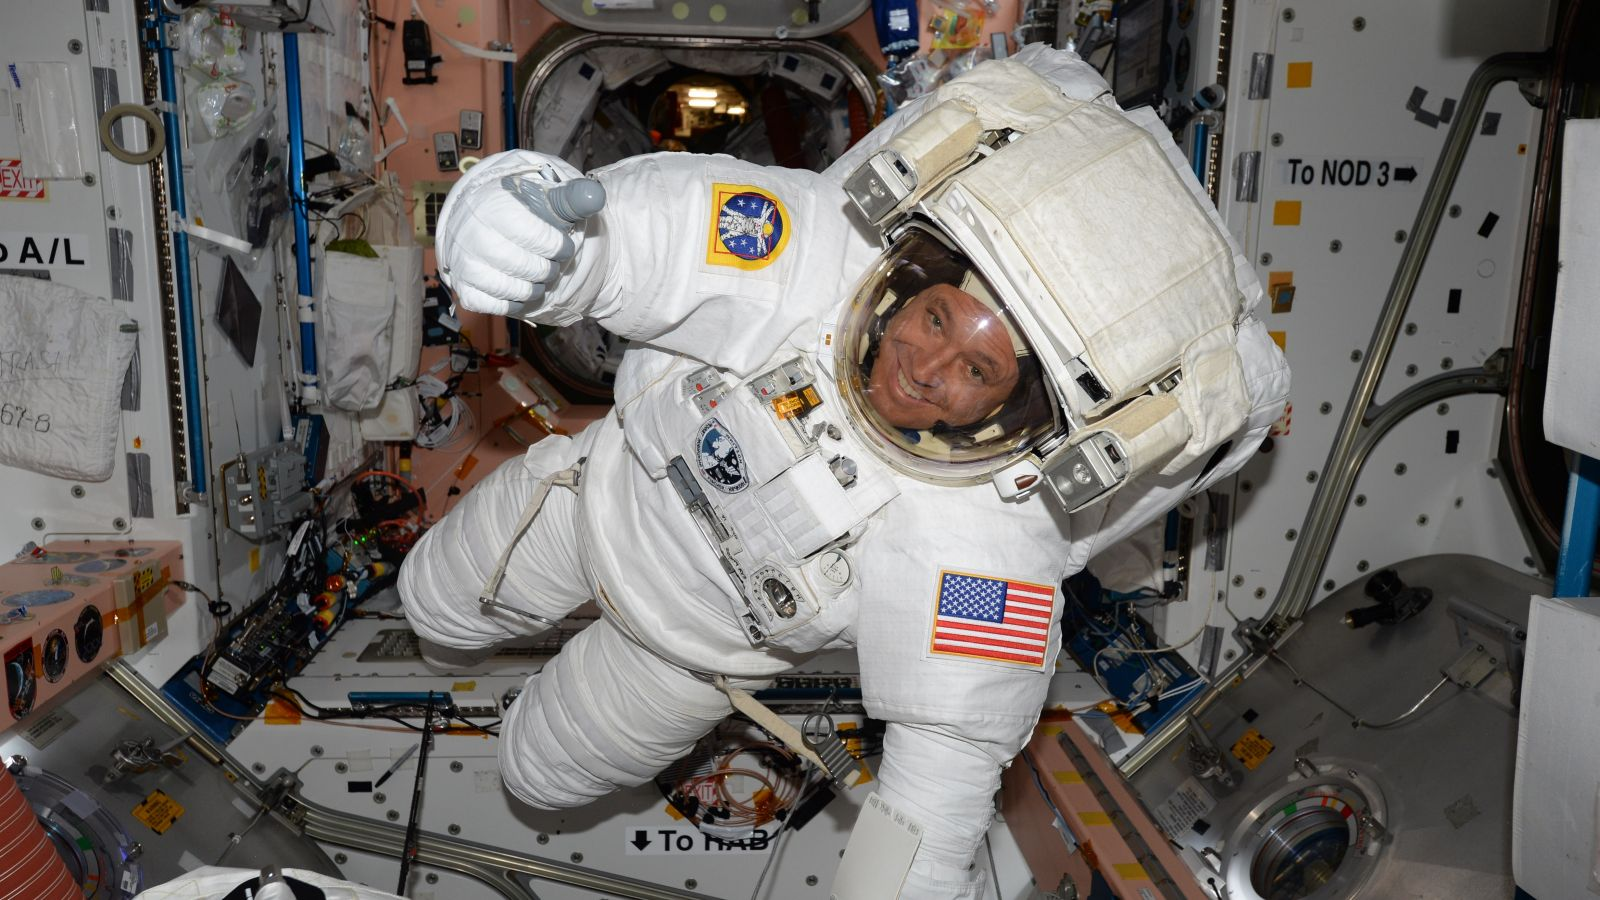 200th Station Spacewalk Comes to an End